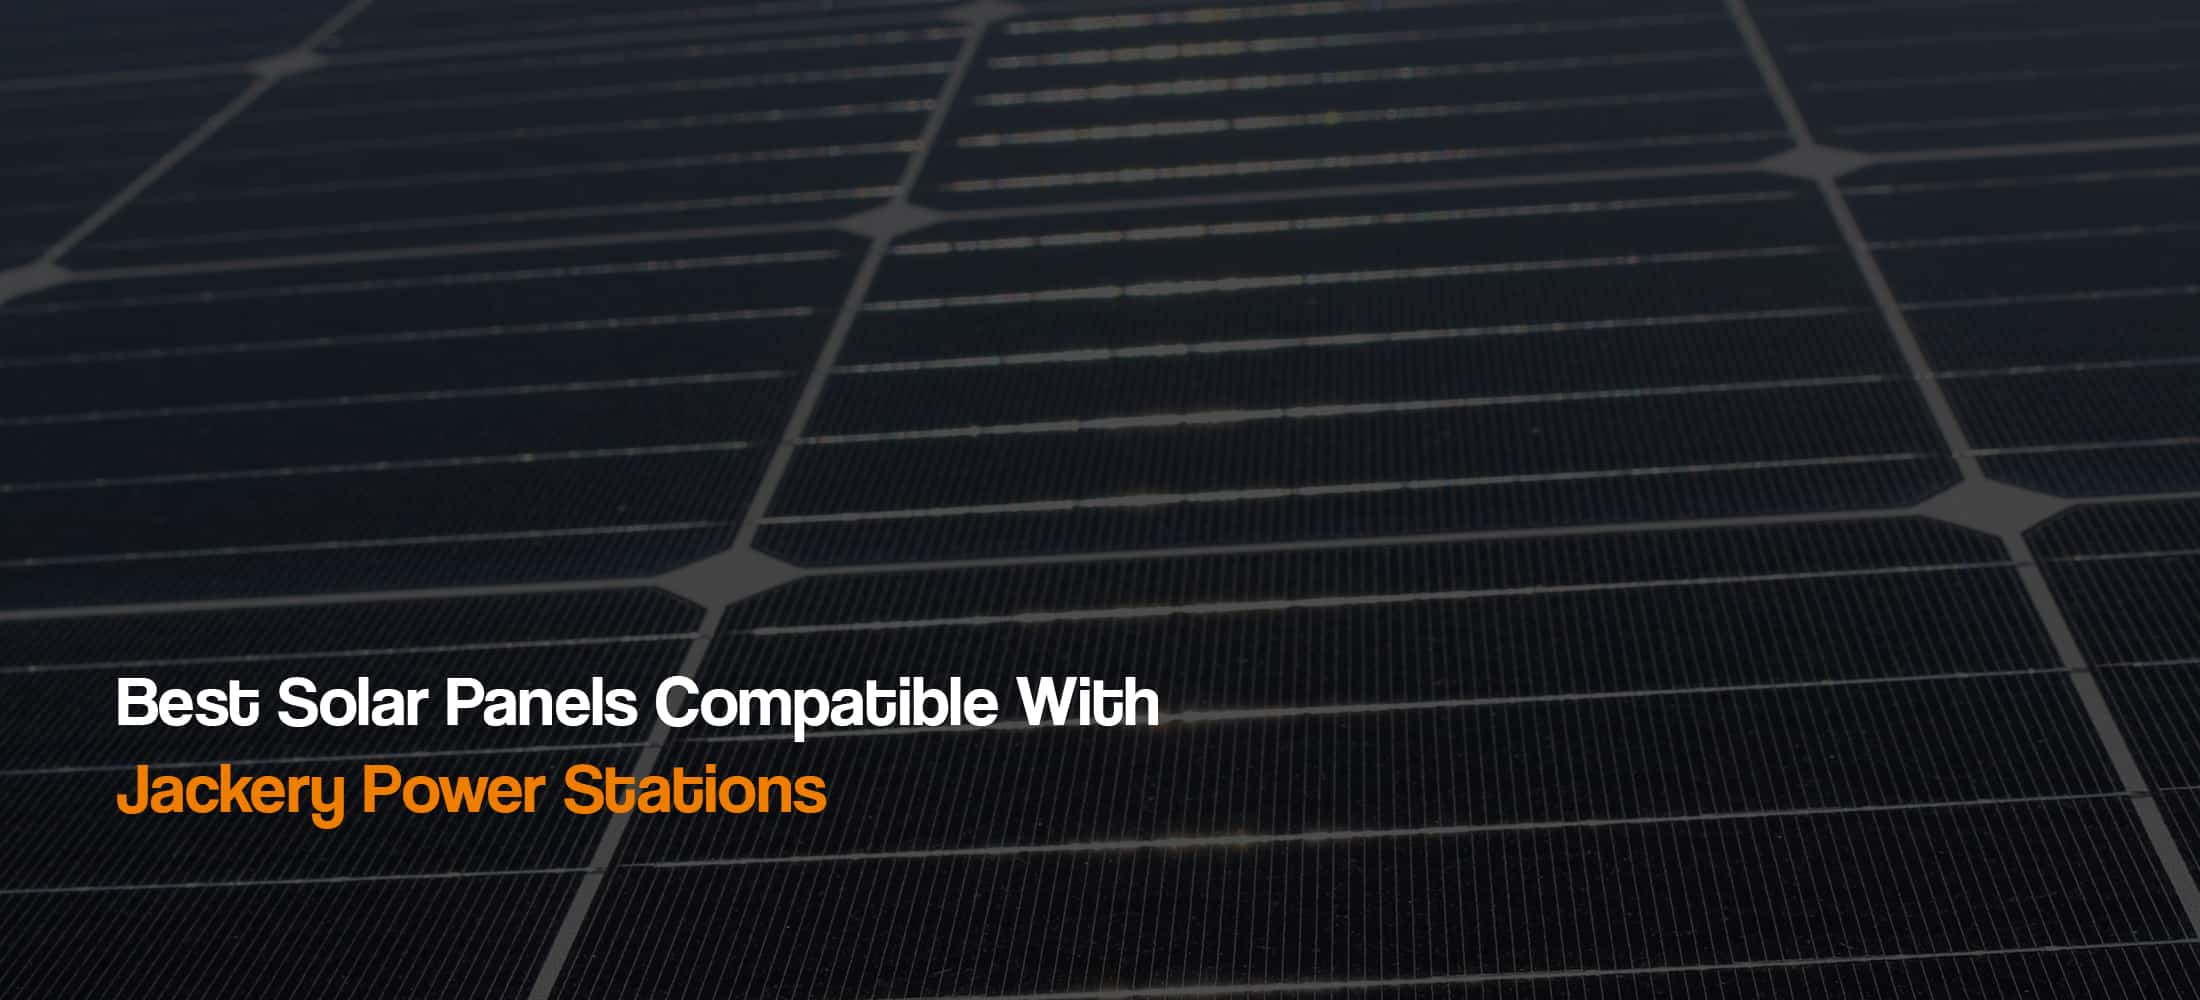 best-solar-panels-compatible-with-Jackery-solar-generators-power-stations-the-solar-addict